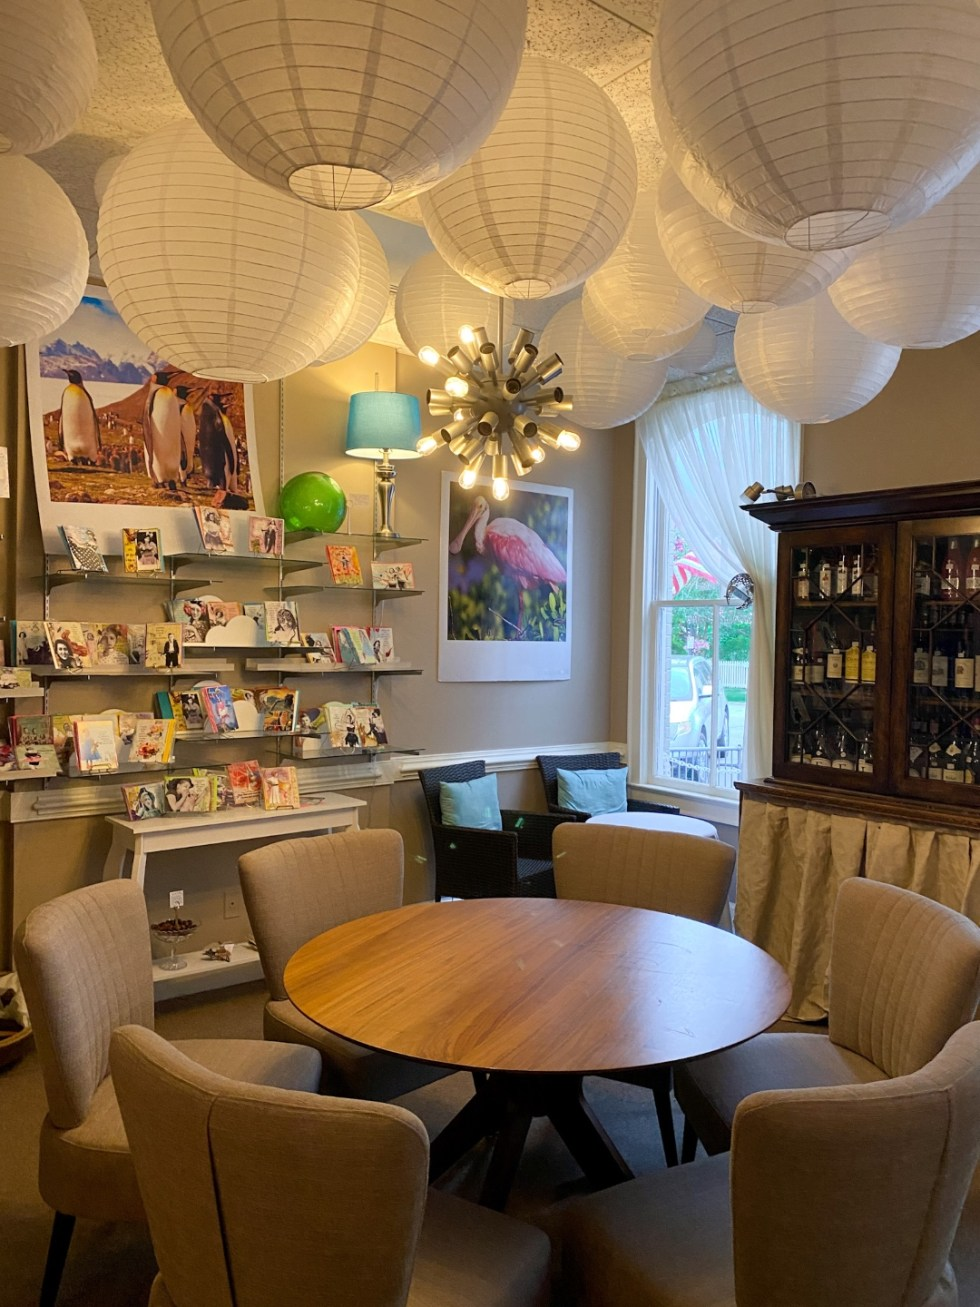 Top 10 Best Things to Do in Edenton, NC: A Complete Travel Guide - I'm Fixin' To - @imfixintoblog | Edenton Travel Guide by popular NC travel guid, I'm Fixin' To: image of white paper lanterns, liquor cabinet, round table with tan fabric chairs.